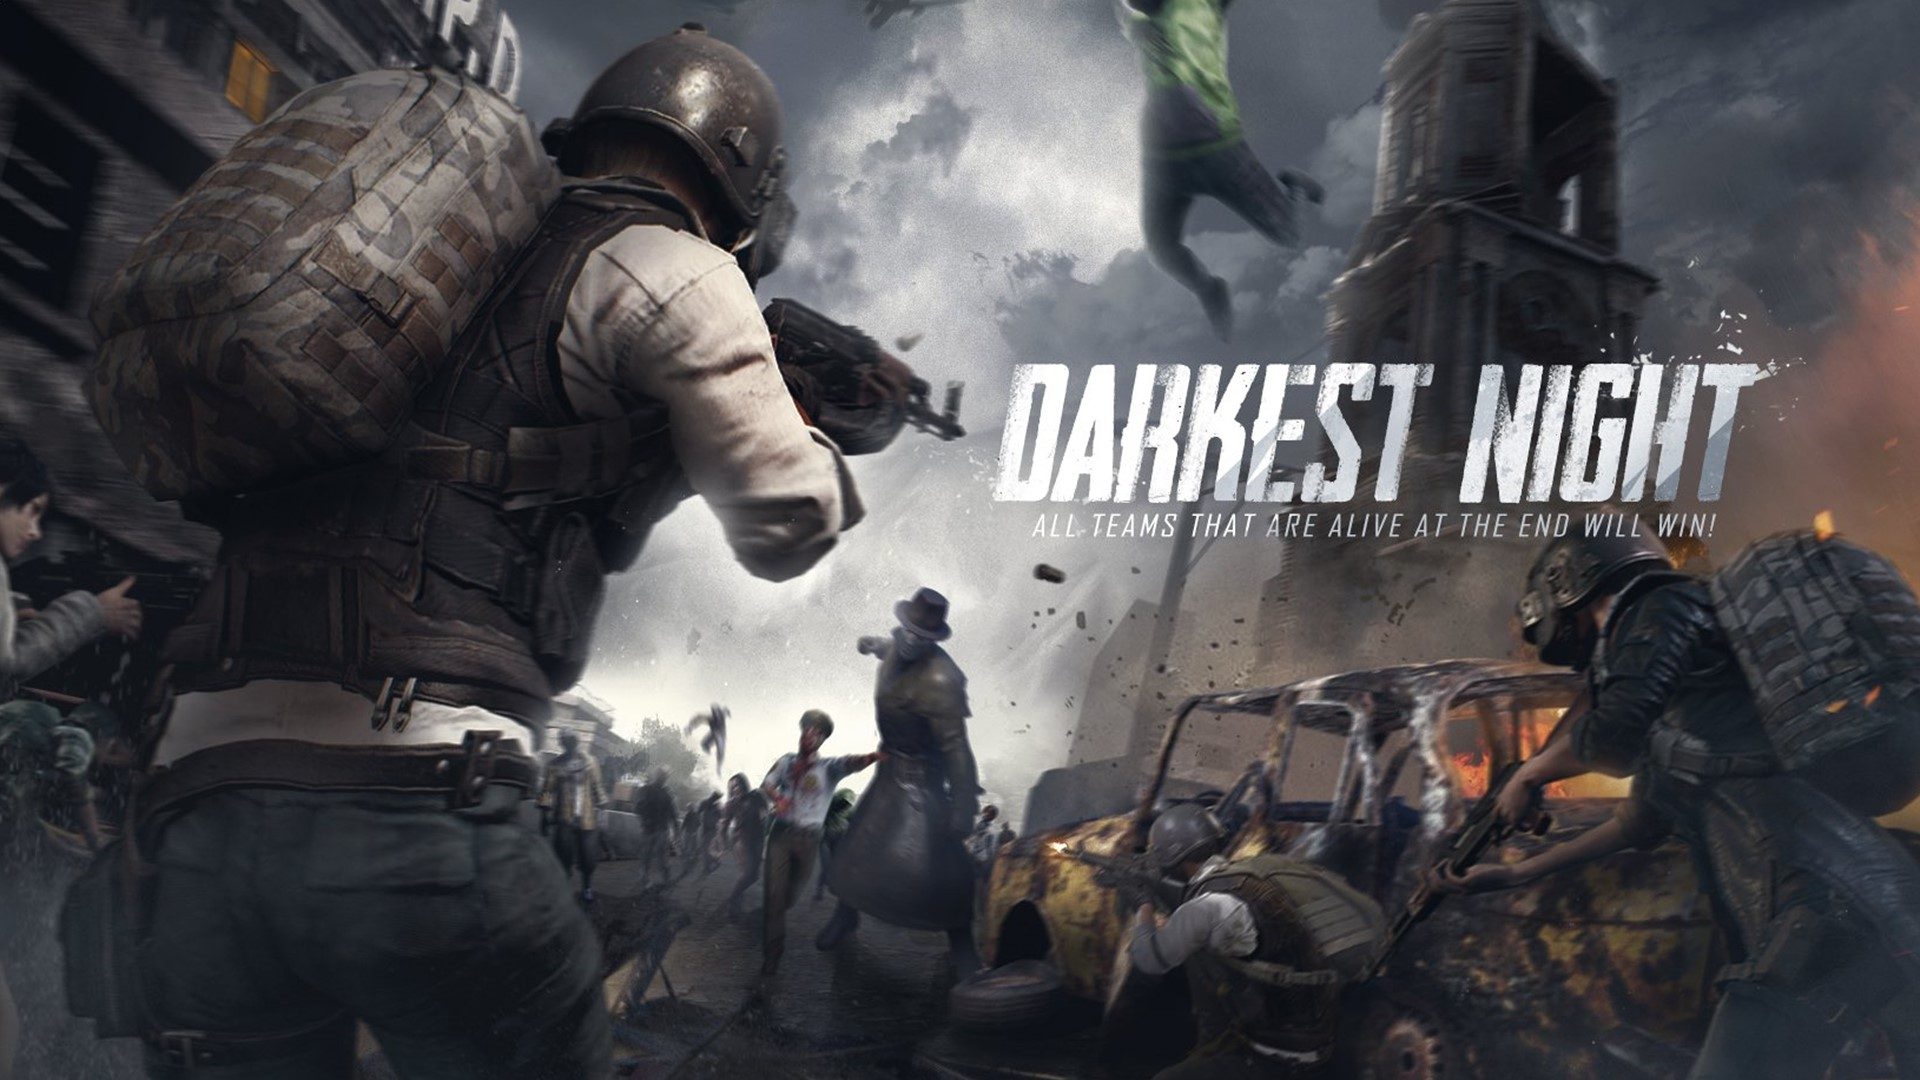 PUBG Mobile 0.12.0 released with EvoZone, Darkest Night and friendly spectator mode